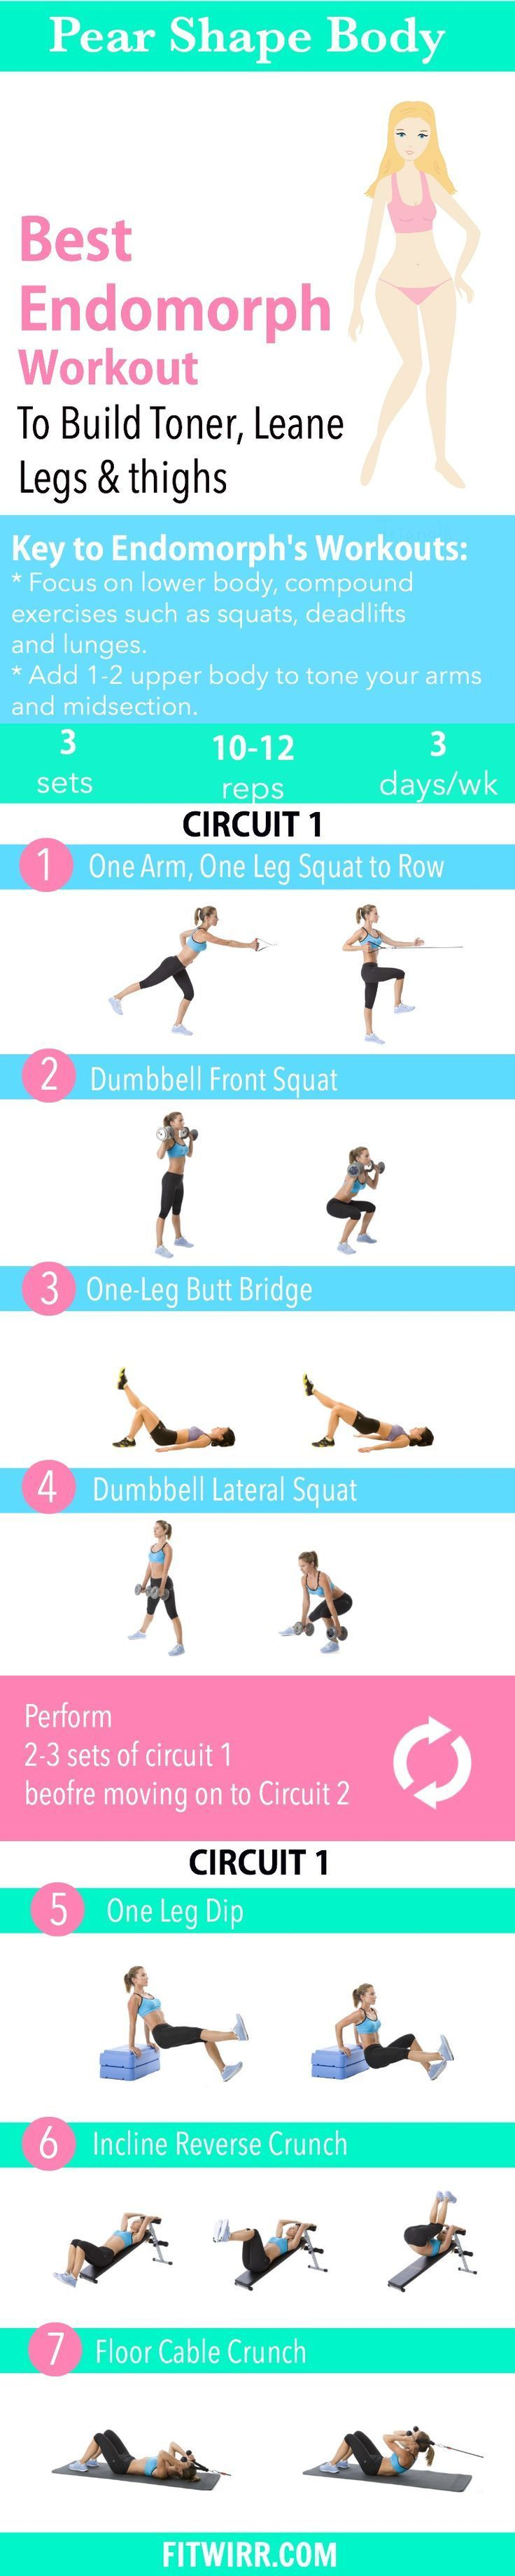 Pear Shape- Endomorph Body Type Workout to Slim Down the Thighs and Legs